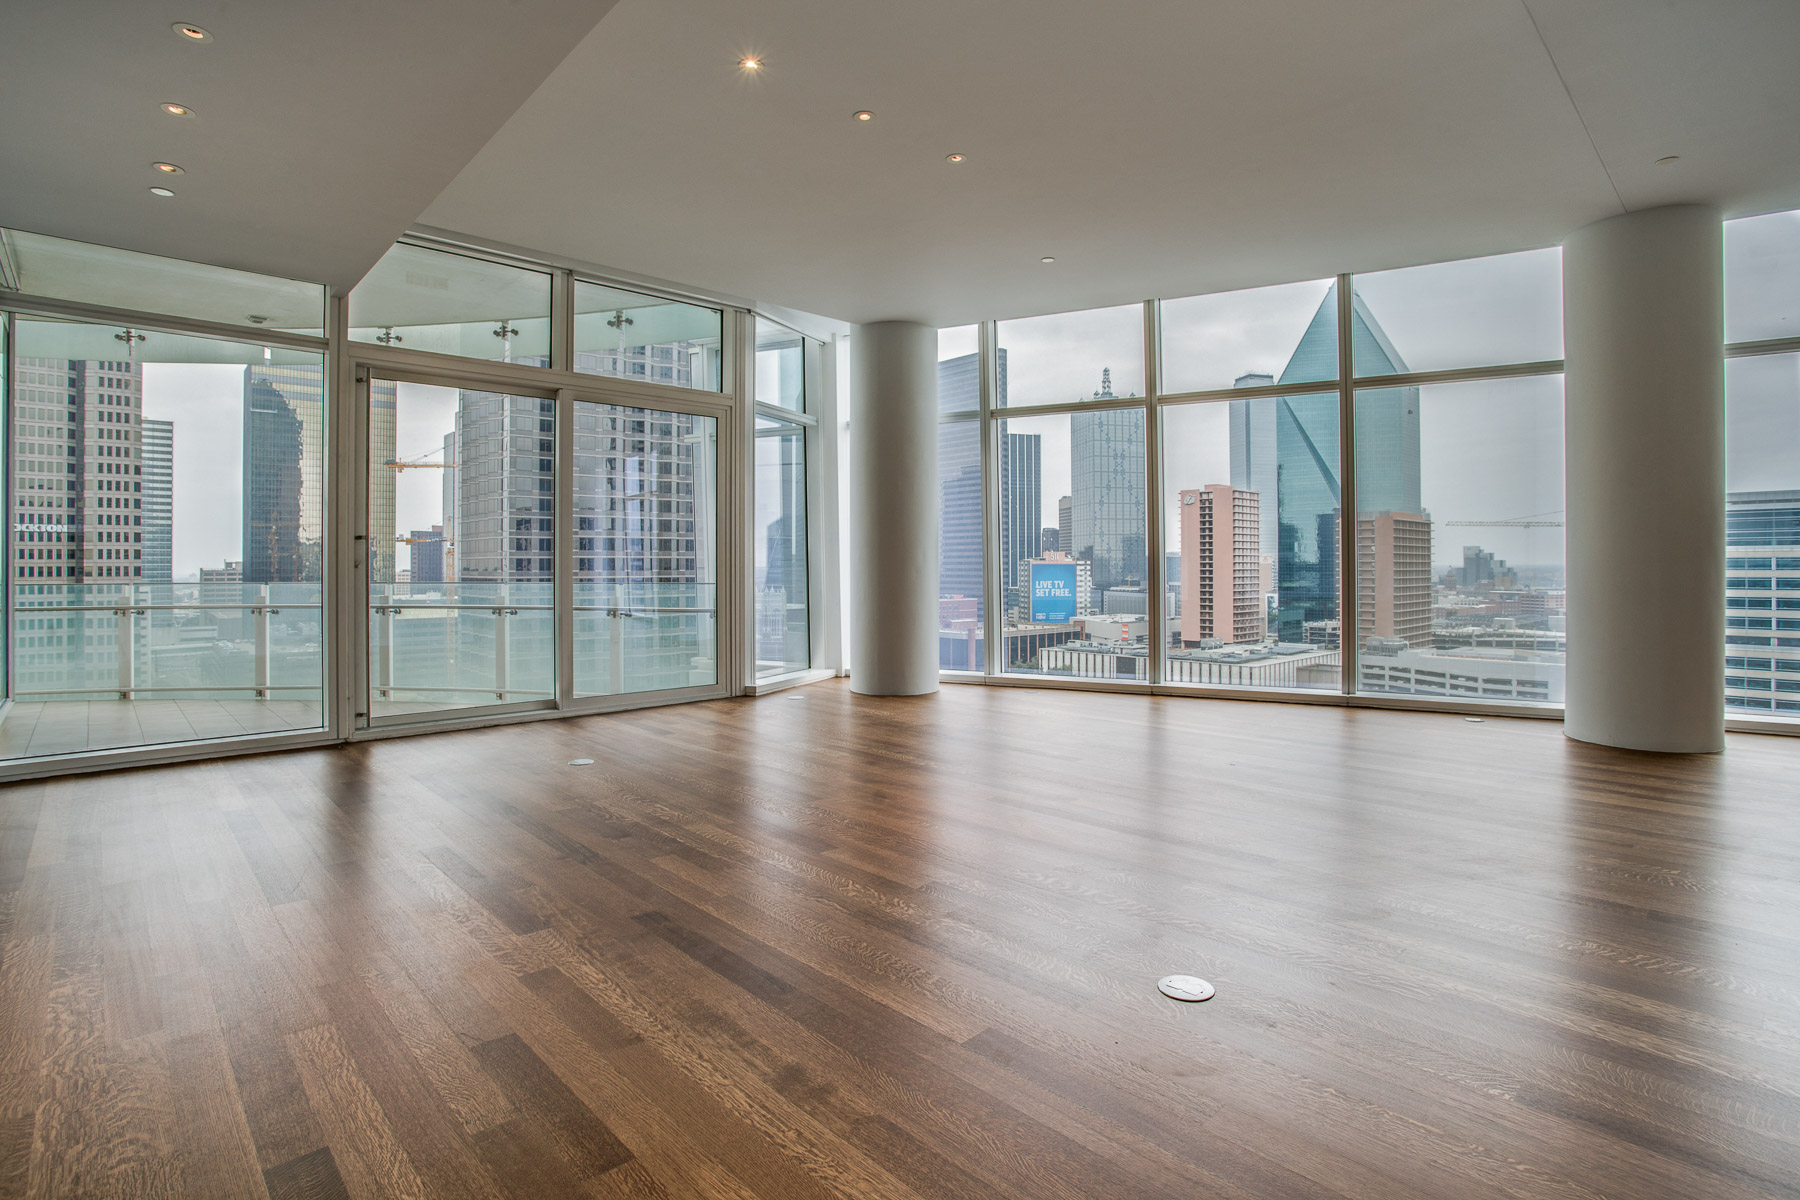 Condominium for Sale at Downtown Arts District Hub 1918 N. Olive Street #1402, Dallas, Texas, 75201 United States